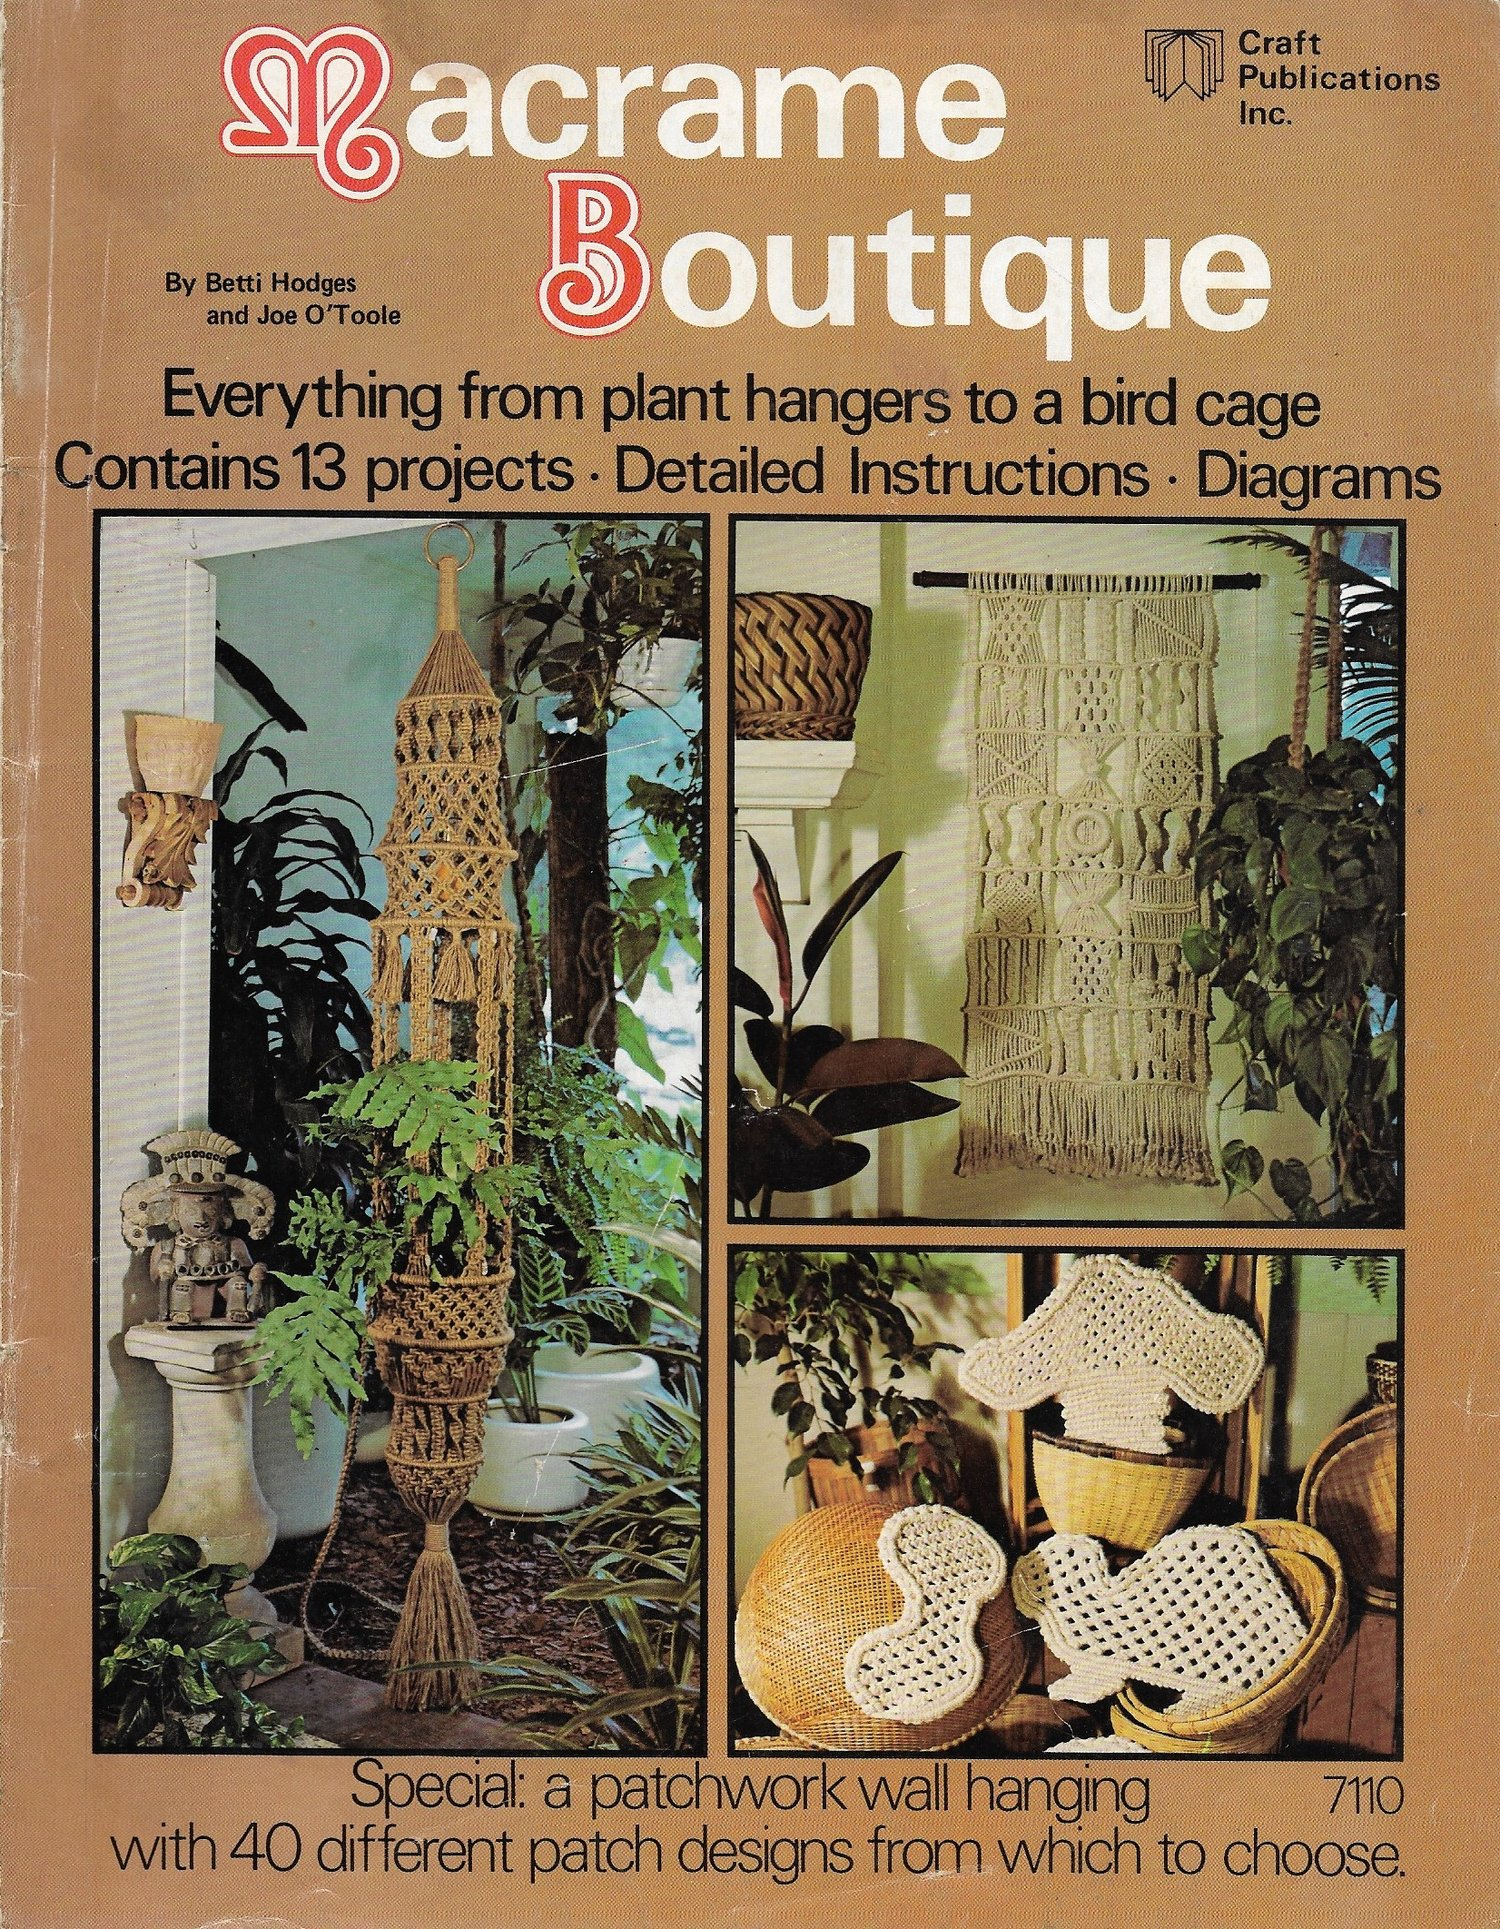 Vintage Macrame Patterns Book Macra-Hangings Etc Retro 1970s PDF Instant Digital Download Stylish Hangers Wall and Plant Hanging Decor